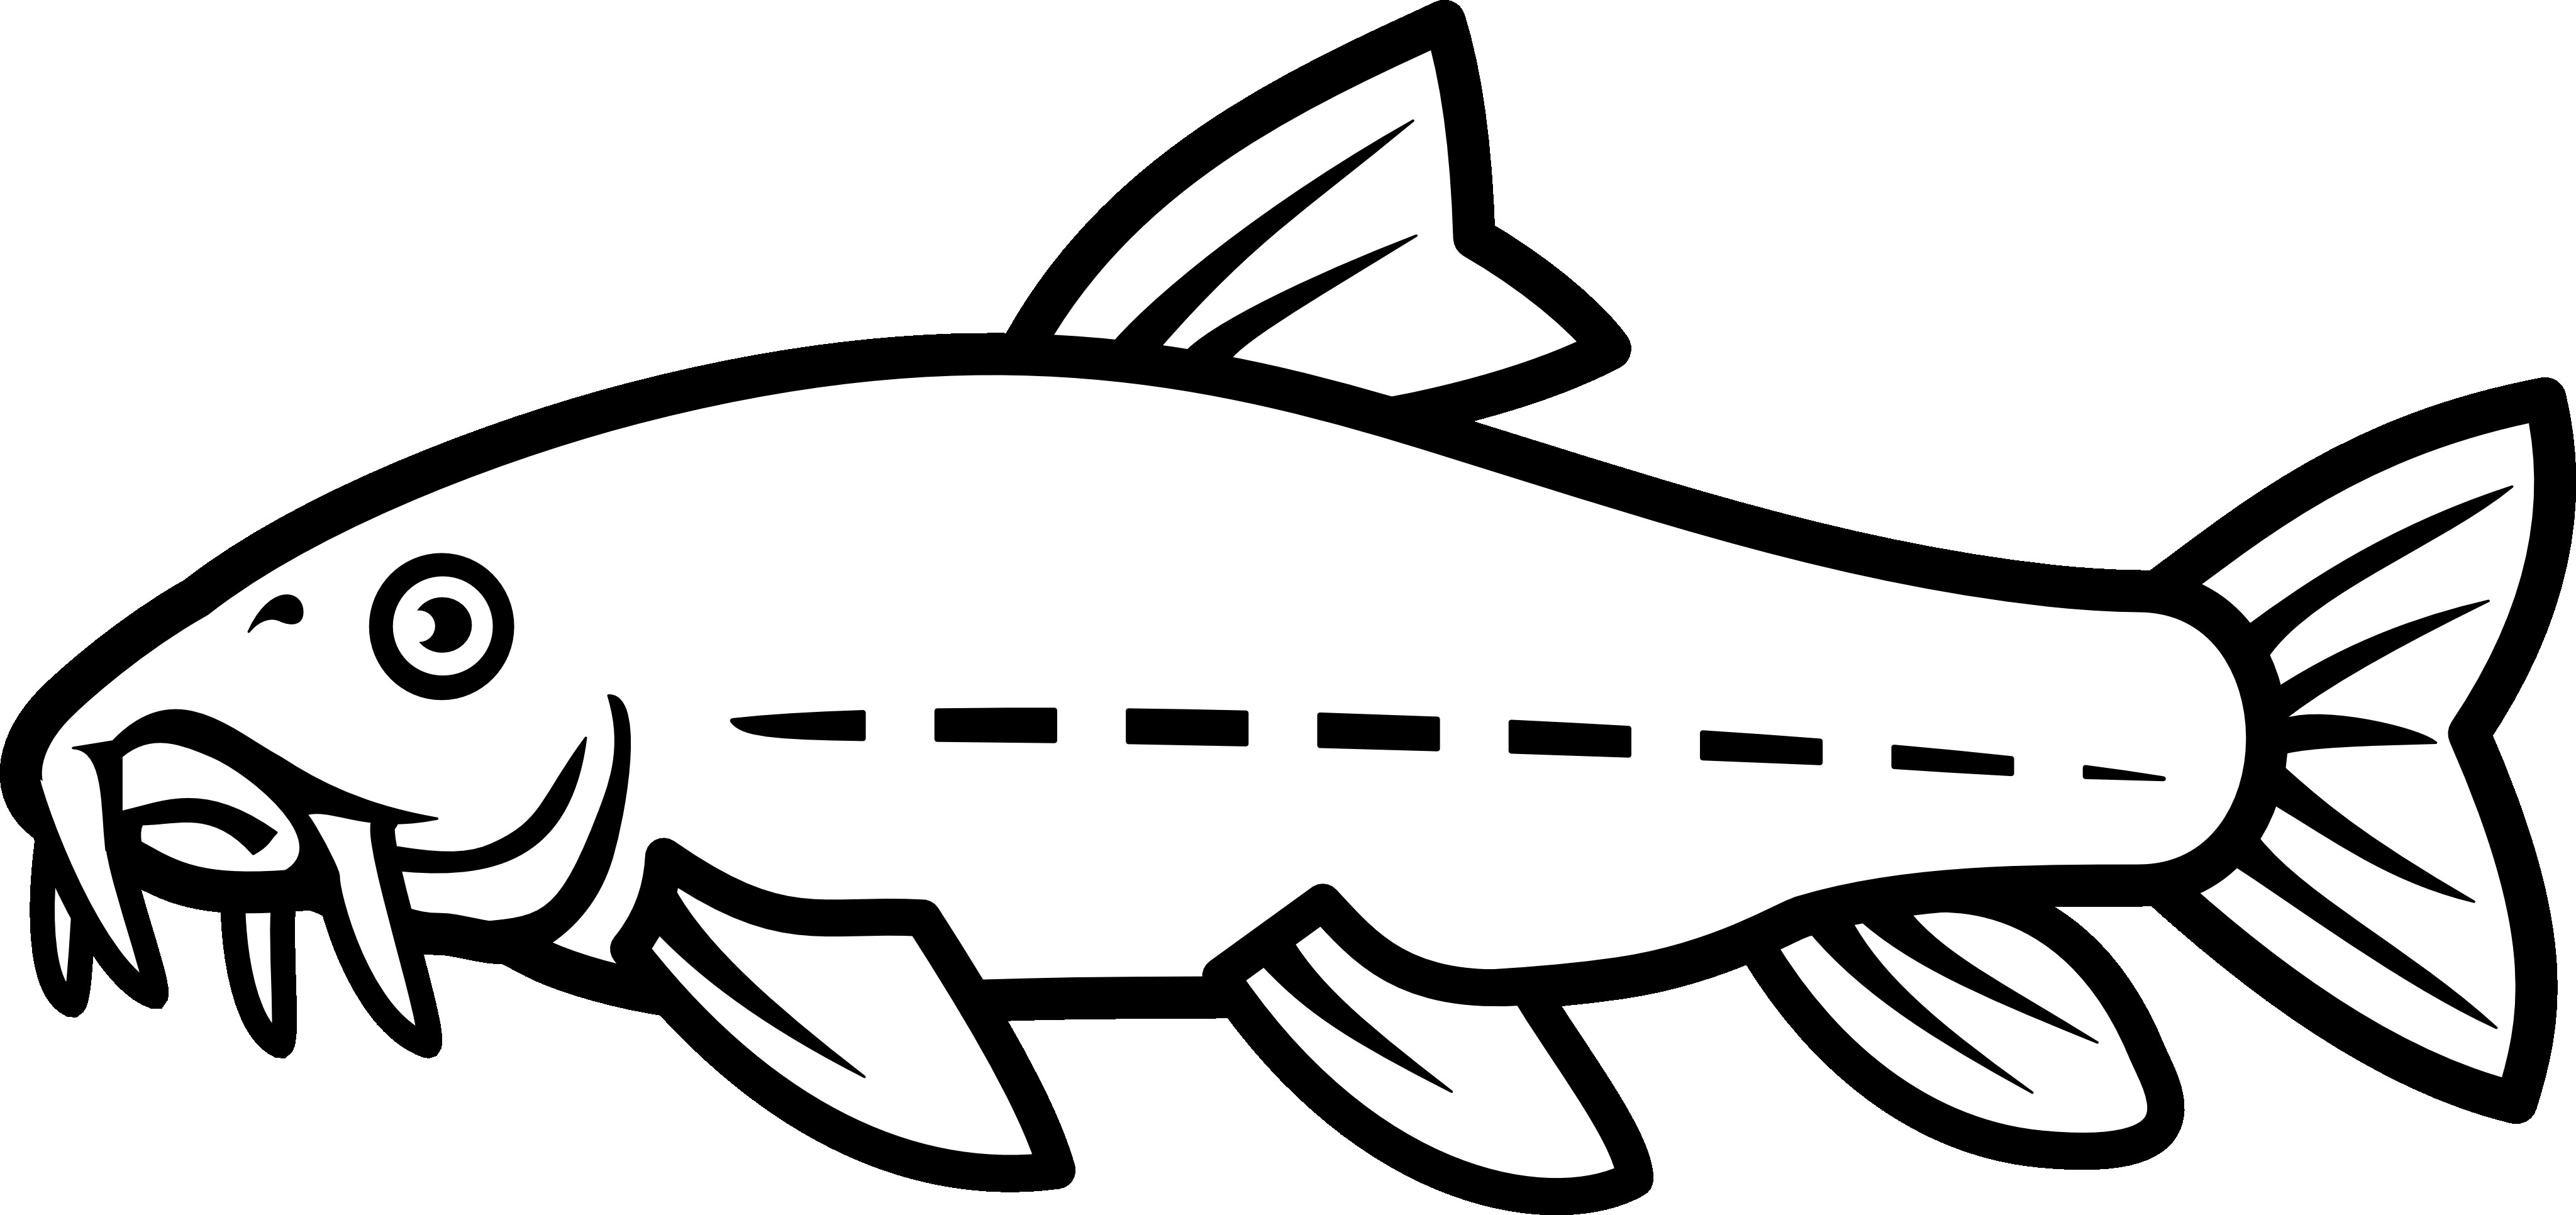 With n clip art. Catfish clipart black and white